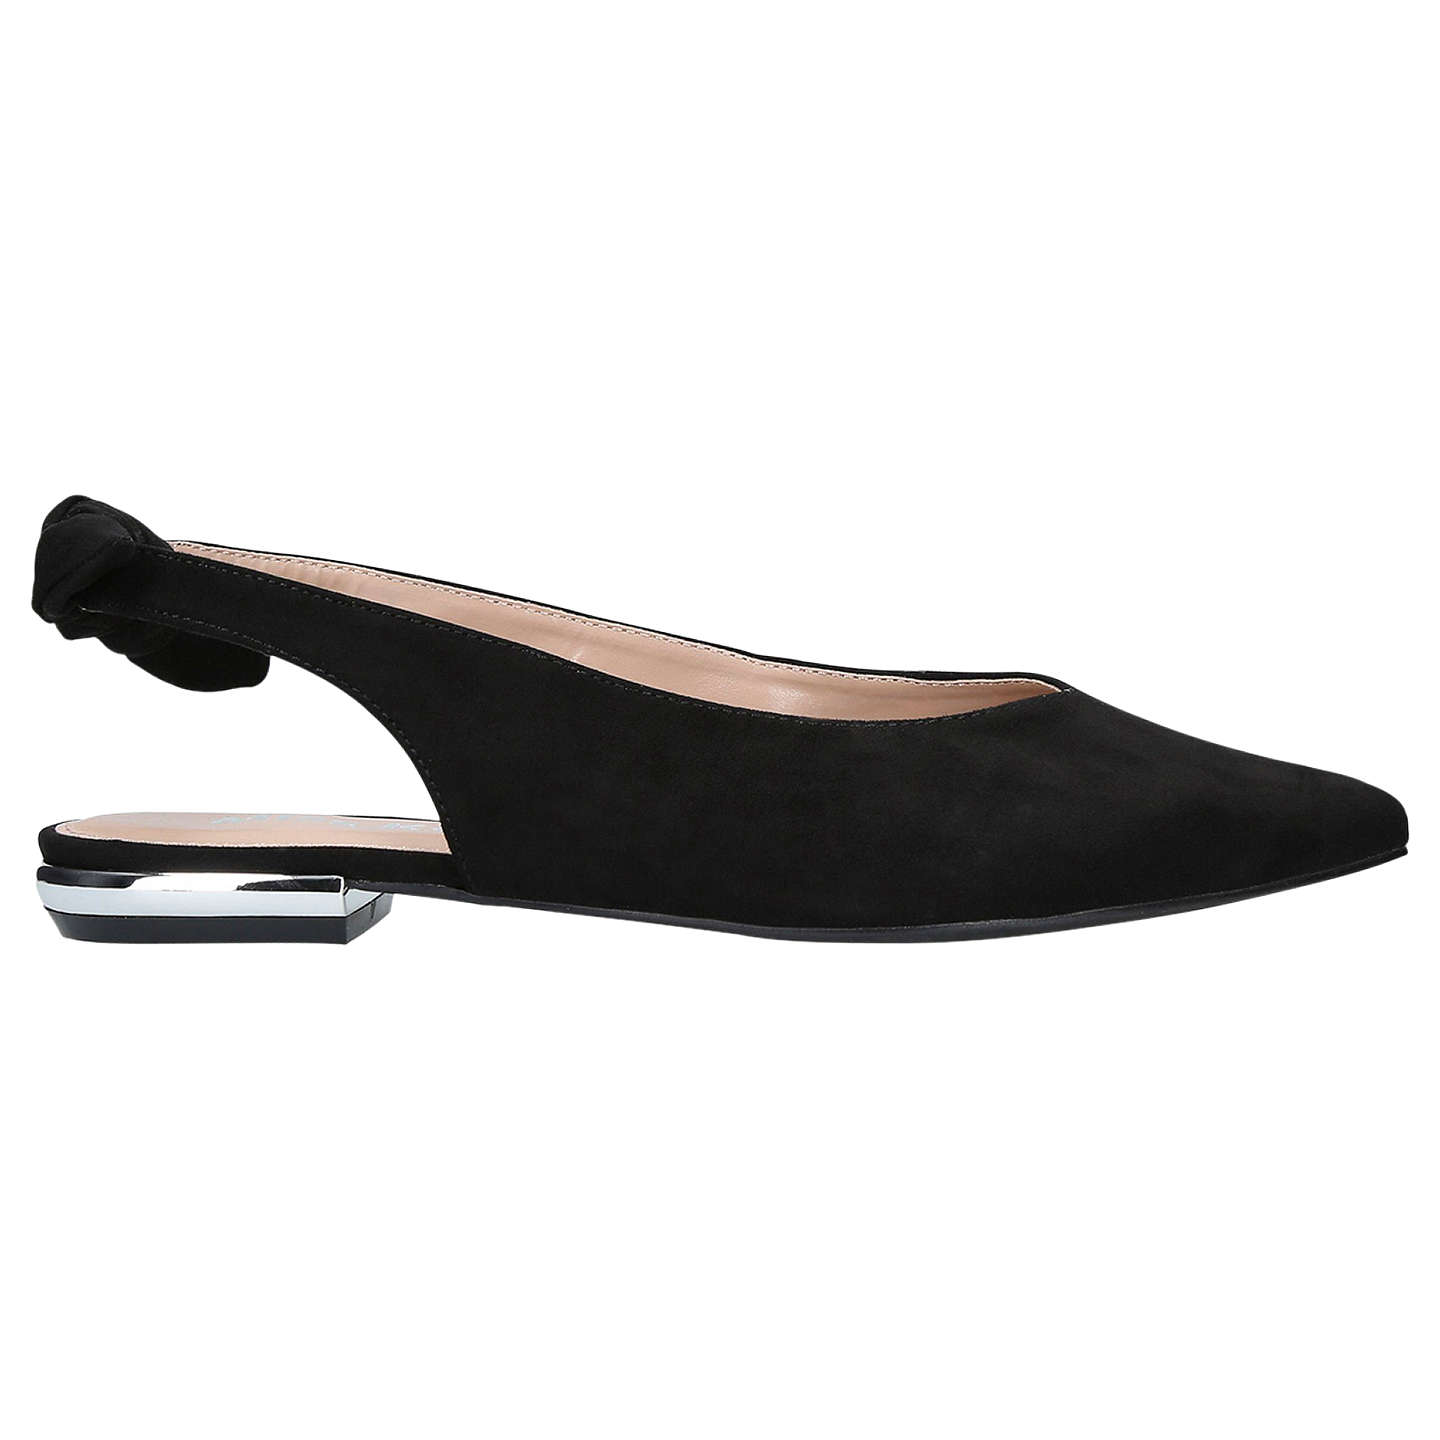 BuyMiss KG Maddie Slingback Pumps, Black, 3 Online at johnlewis.com